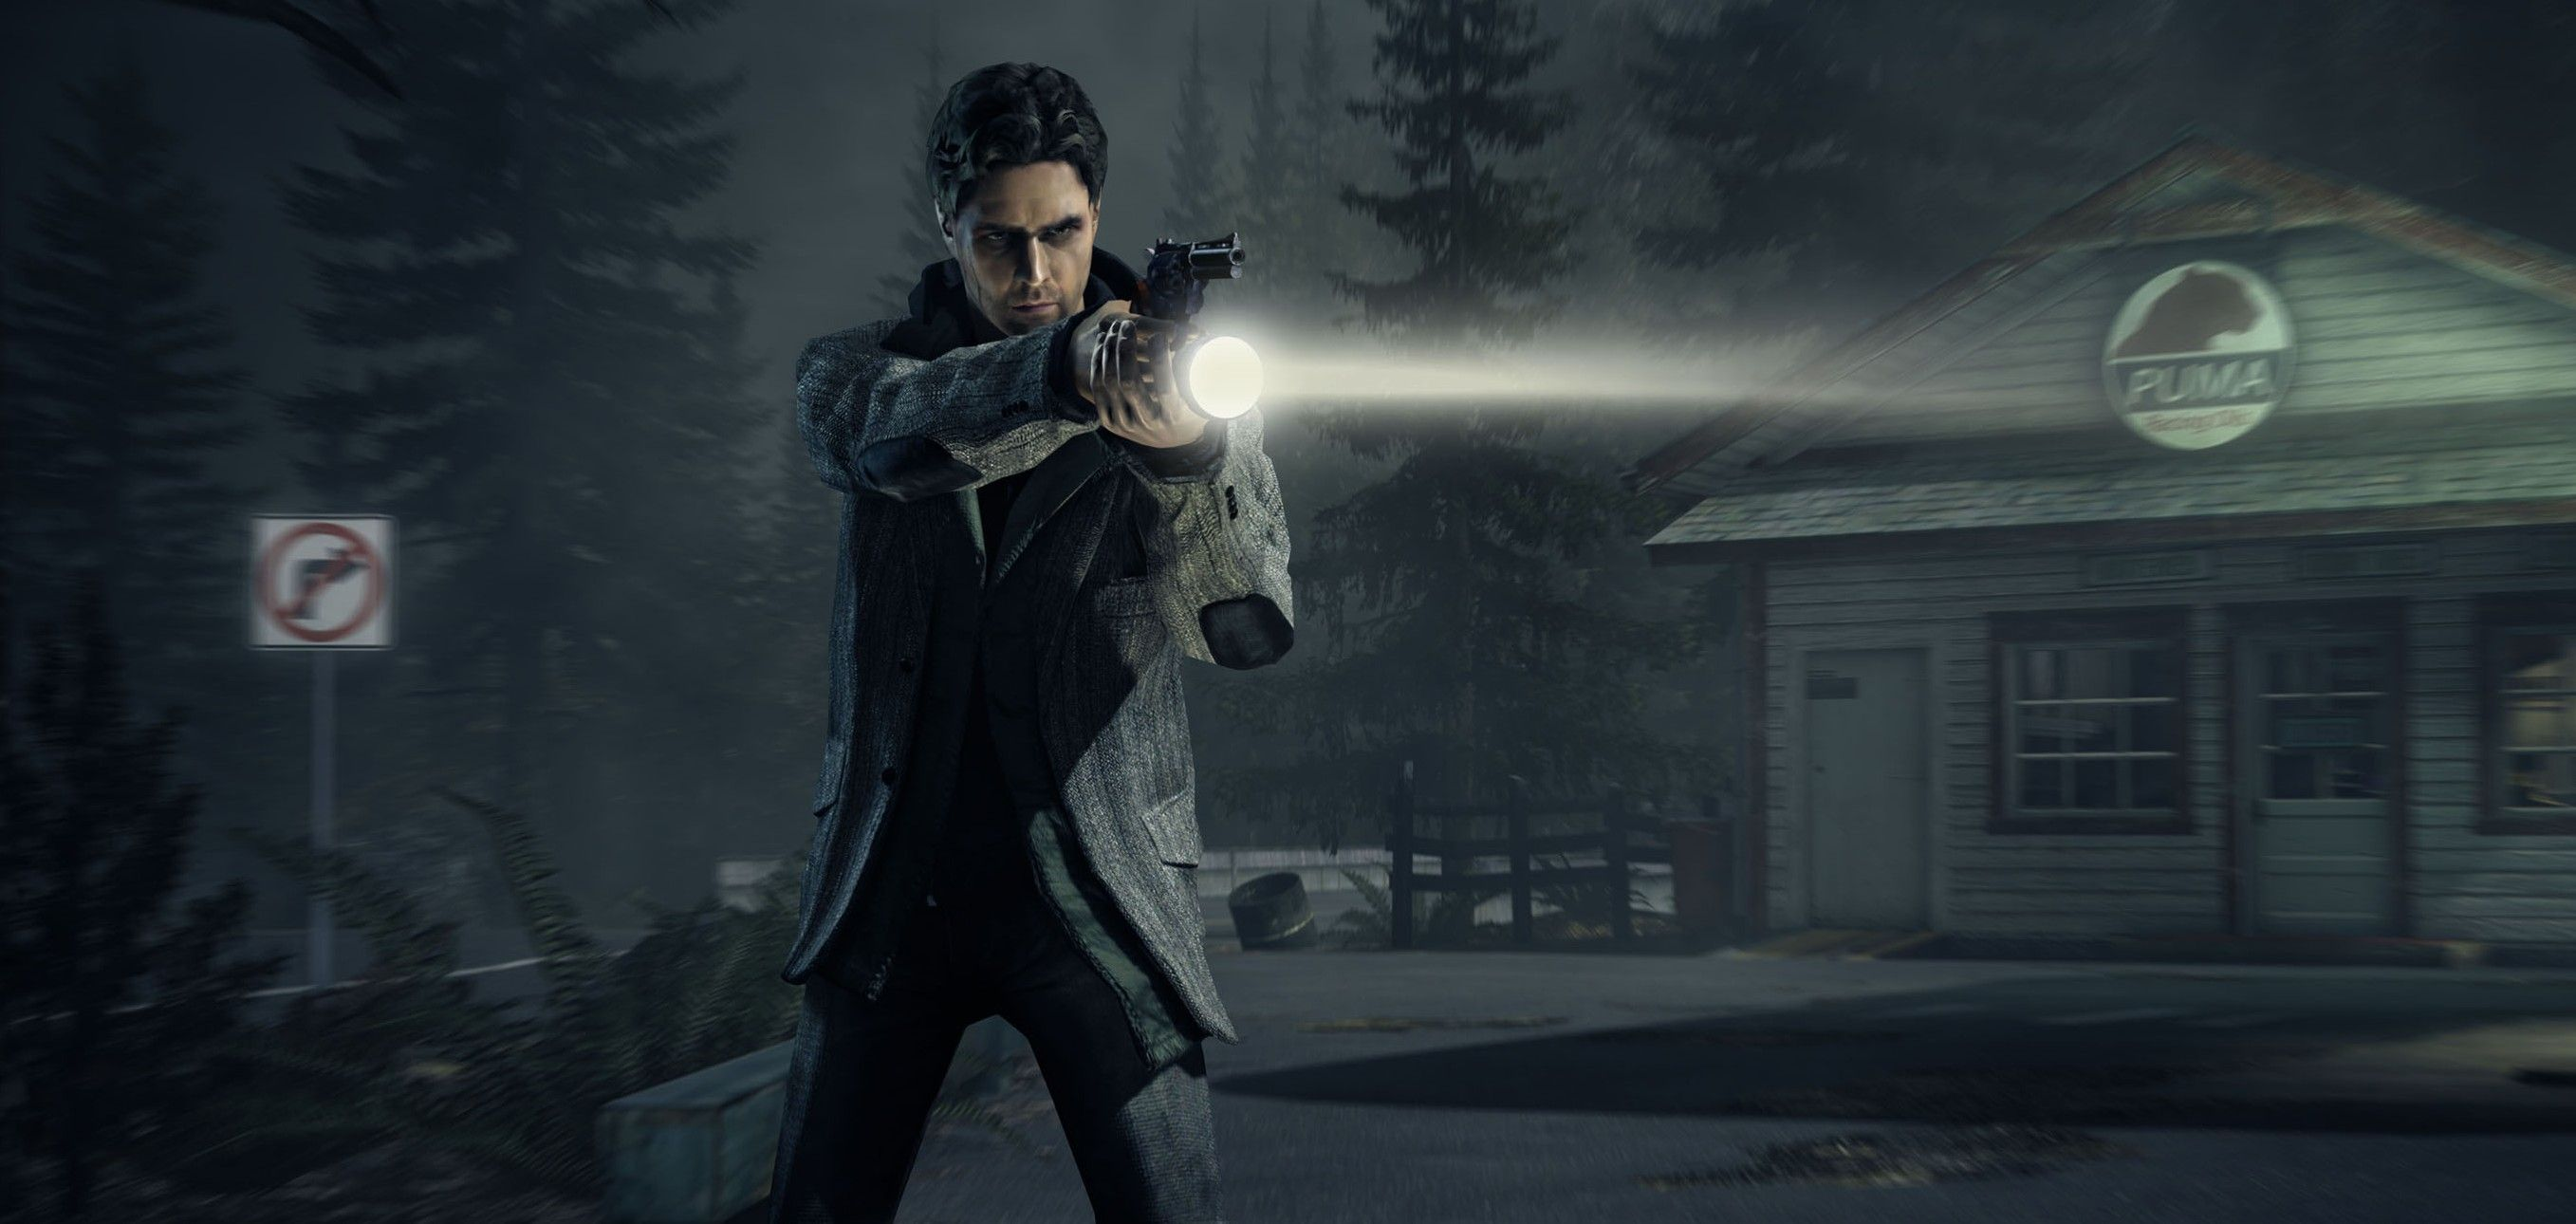 We Might Get An Alan Wake Sequel Once Quantum Break Is Released, So